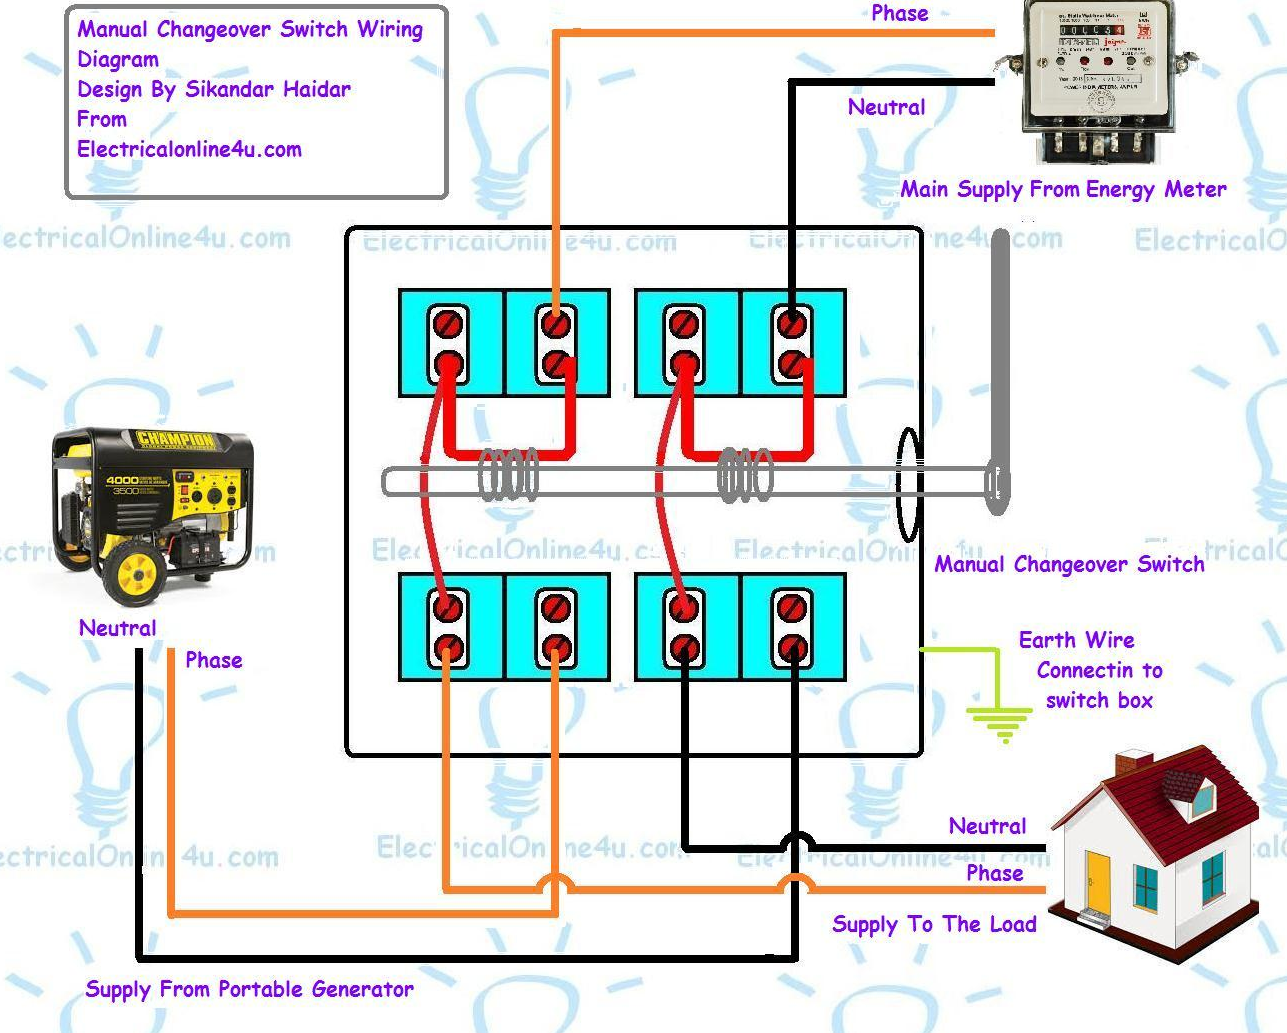 Home Wiring Diagram Maker Basic Guide Electrical Simulation Software Circuit Symbols Images Gallery